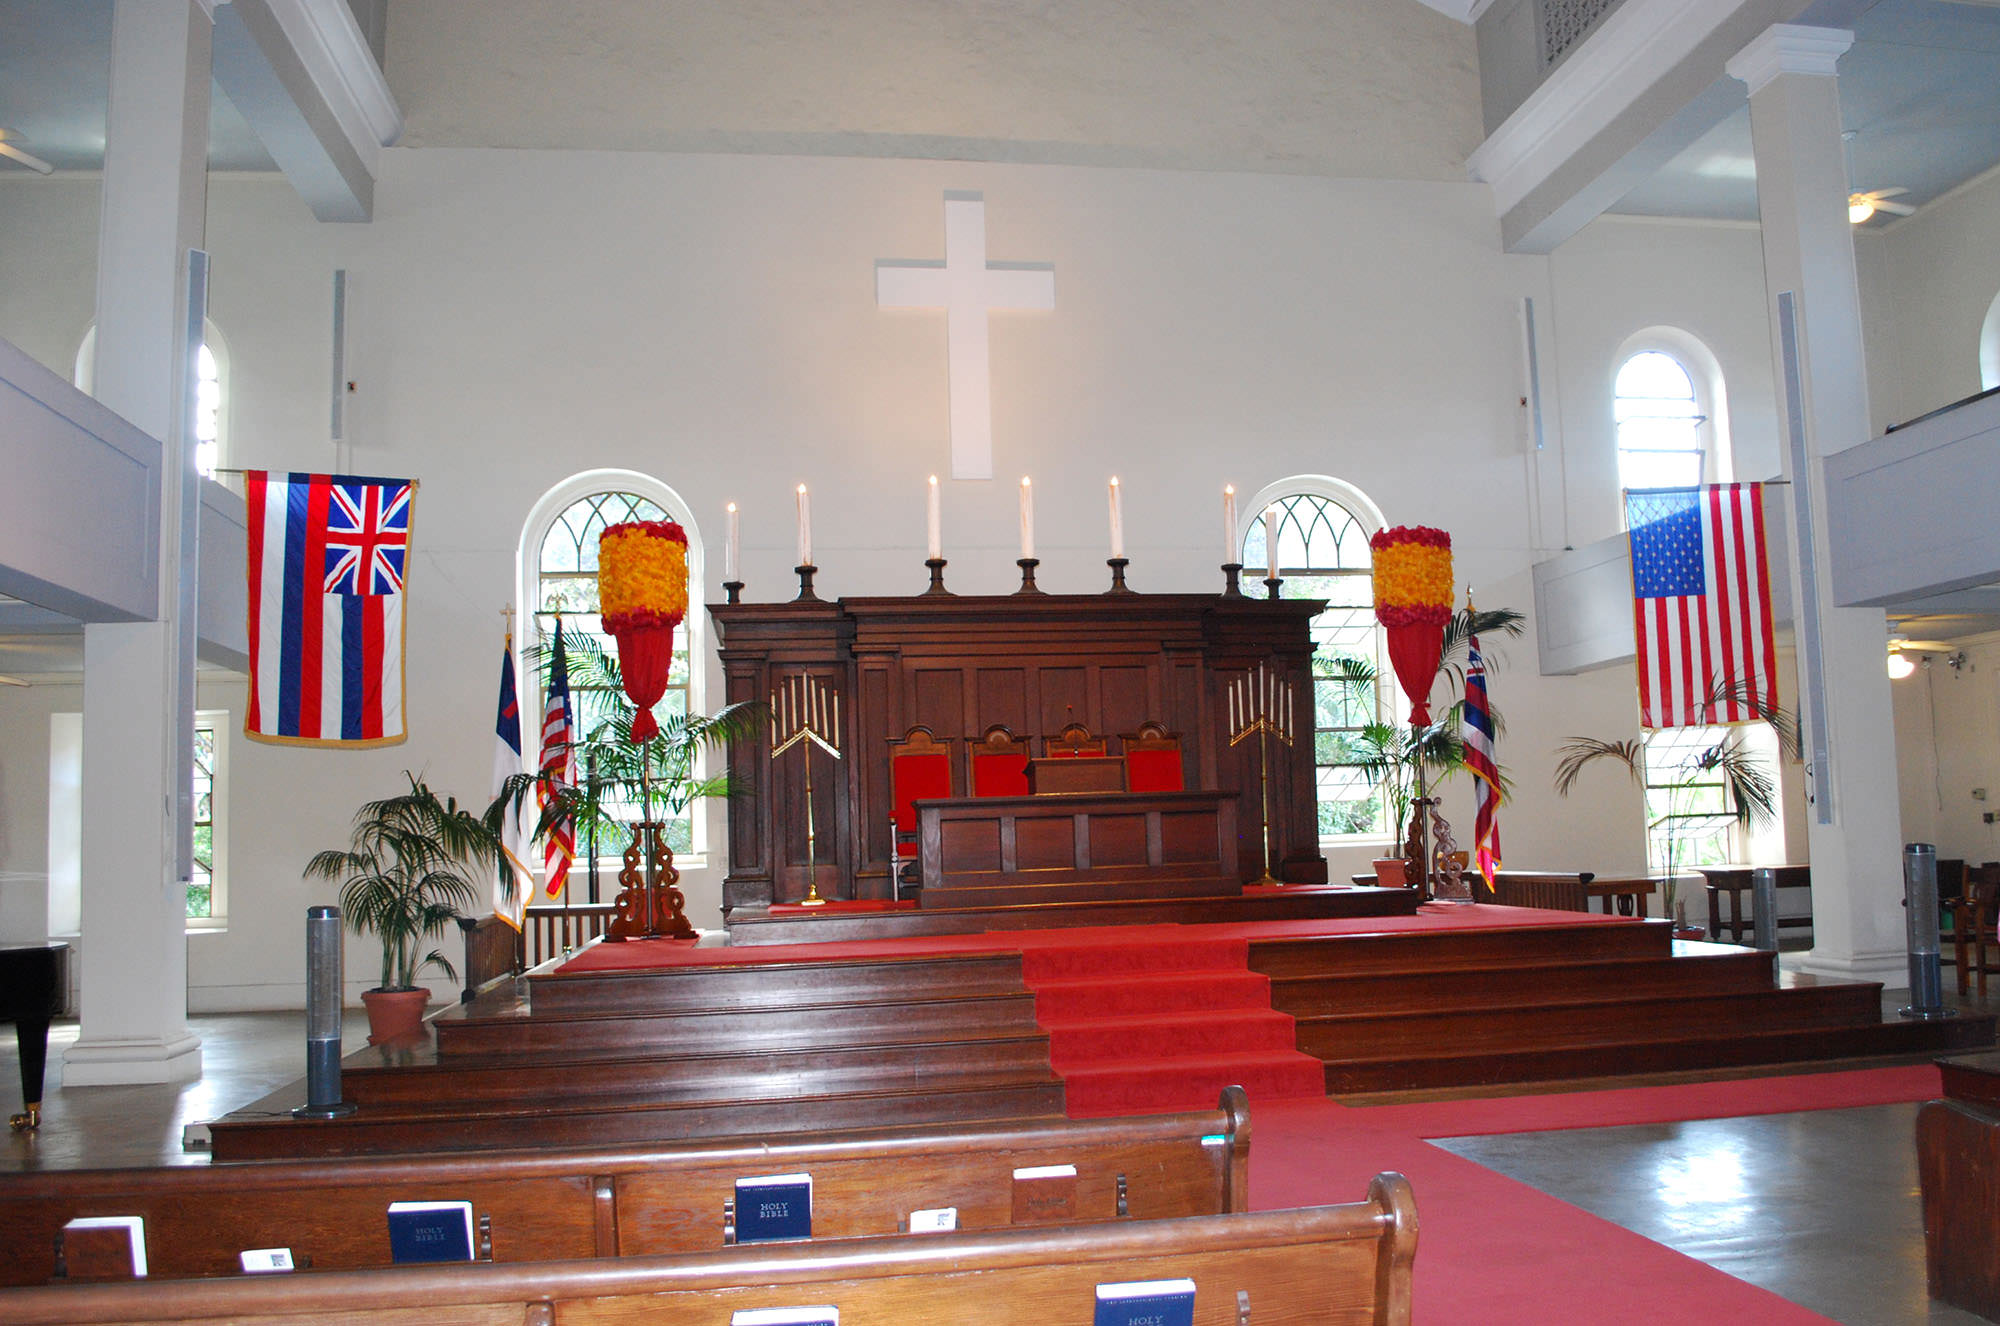 Fig. 10 Kawaiahaʻo Church, Oʻahu, interior, looking toward altar. Note red and yellow royal feather standards; alternating State of Hawaiʻi and United States of America flags flanking sanctuary (flags alternate from front to back and right to left along the full length of the nave); and, left to right, Christian, United States of America, and State of Hawaiʻi flags across front wall under white Latin cross, February 2014. Photo: ©Sally Promey